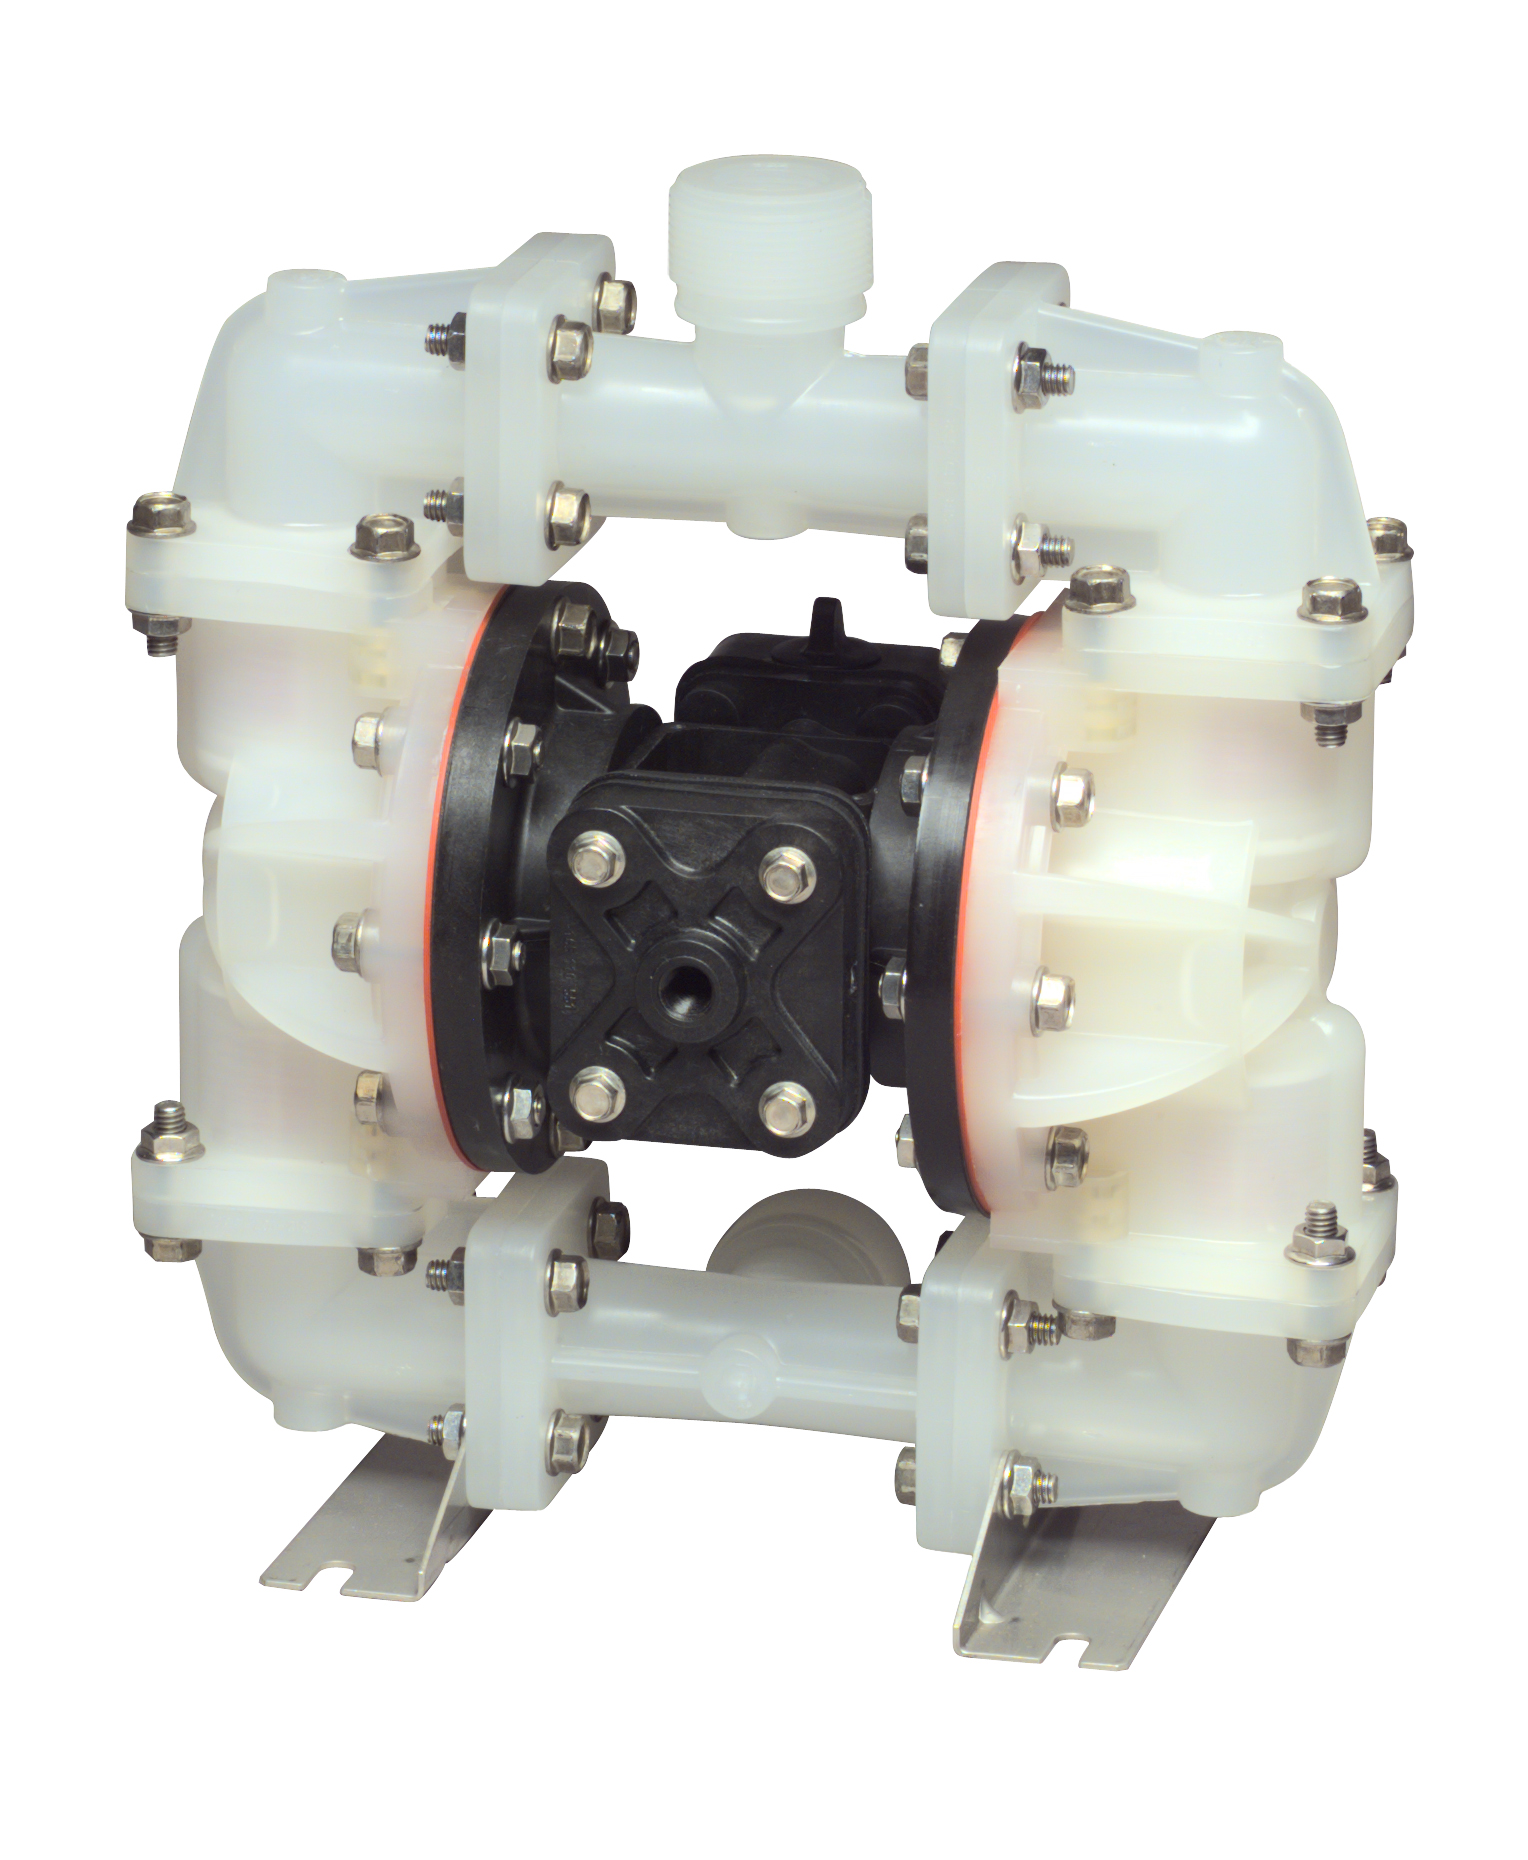 Air operated double diaphragm pumps engineer live non metal bodied aodd pump air operated double diaphragm ccuart Images